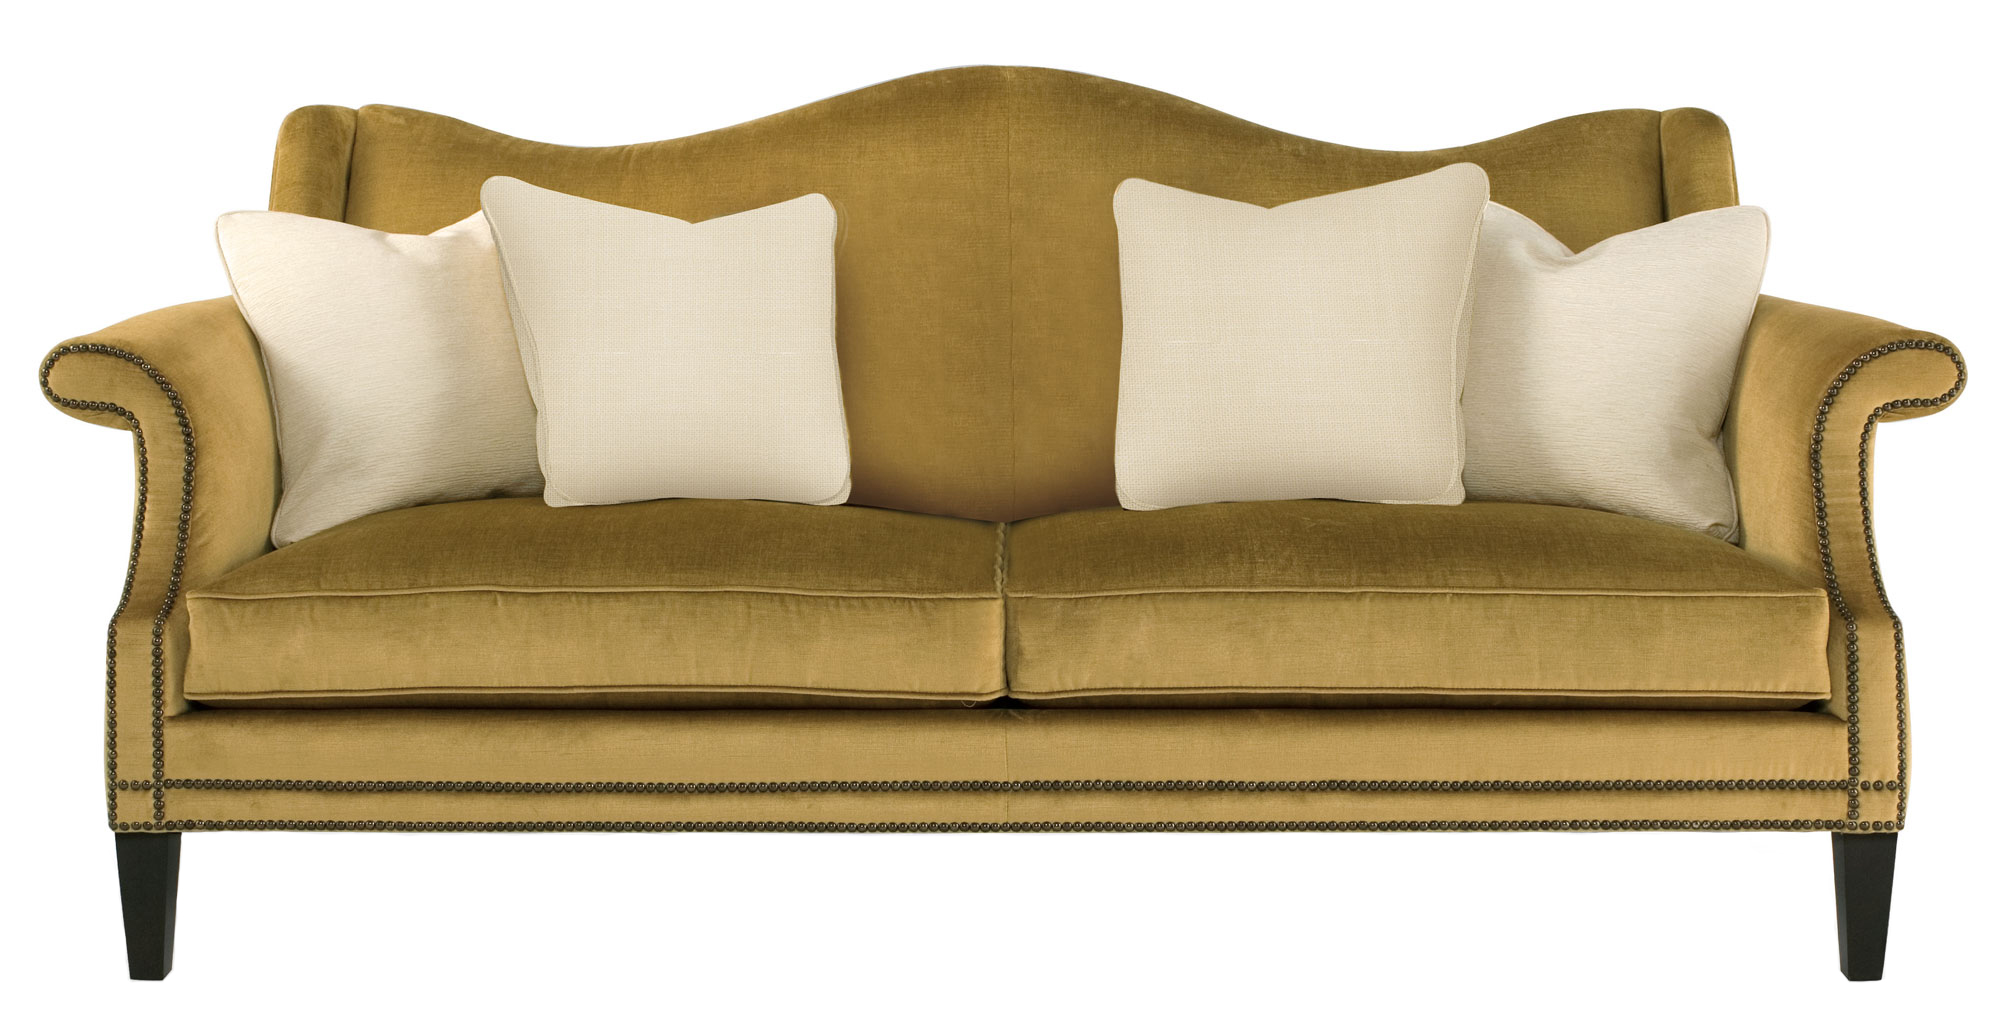 Bernhardt fitzgerald sofa hereo sofa for Bernhardt furniture